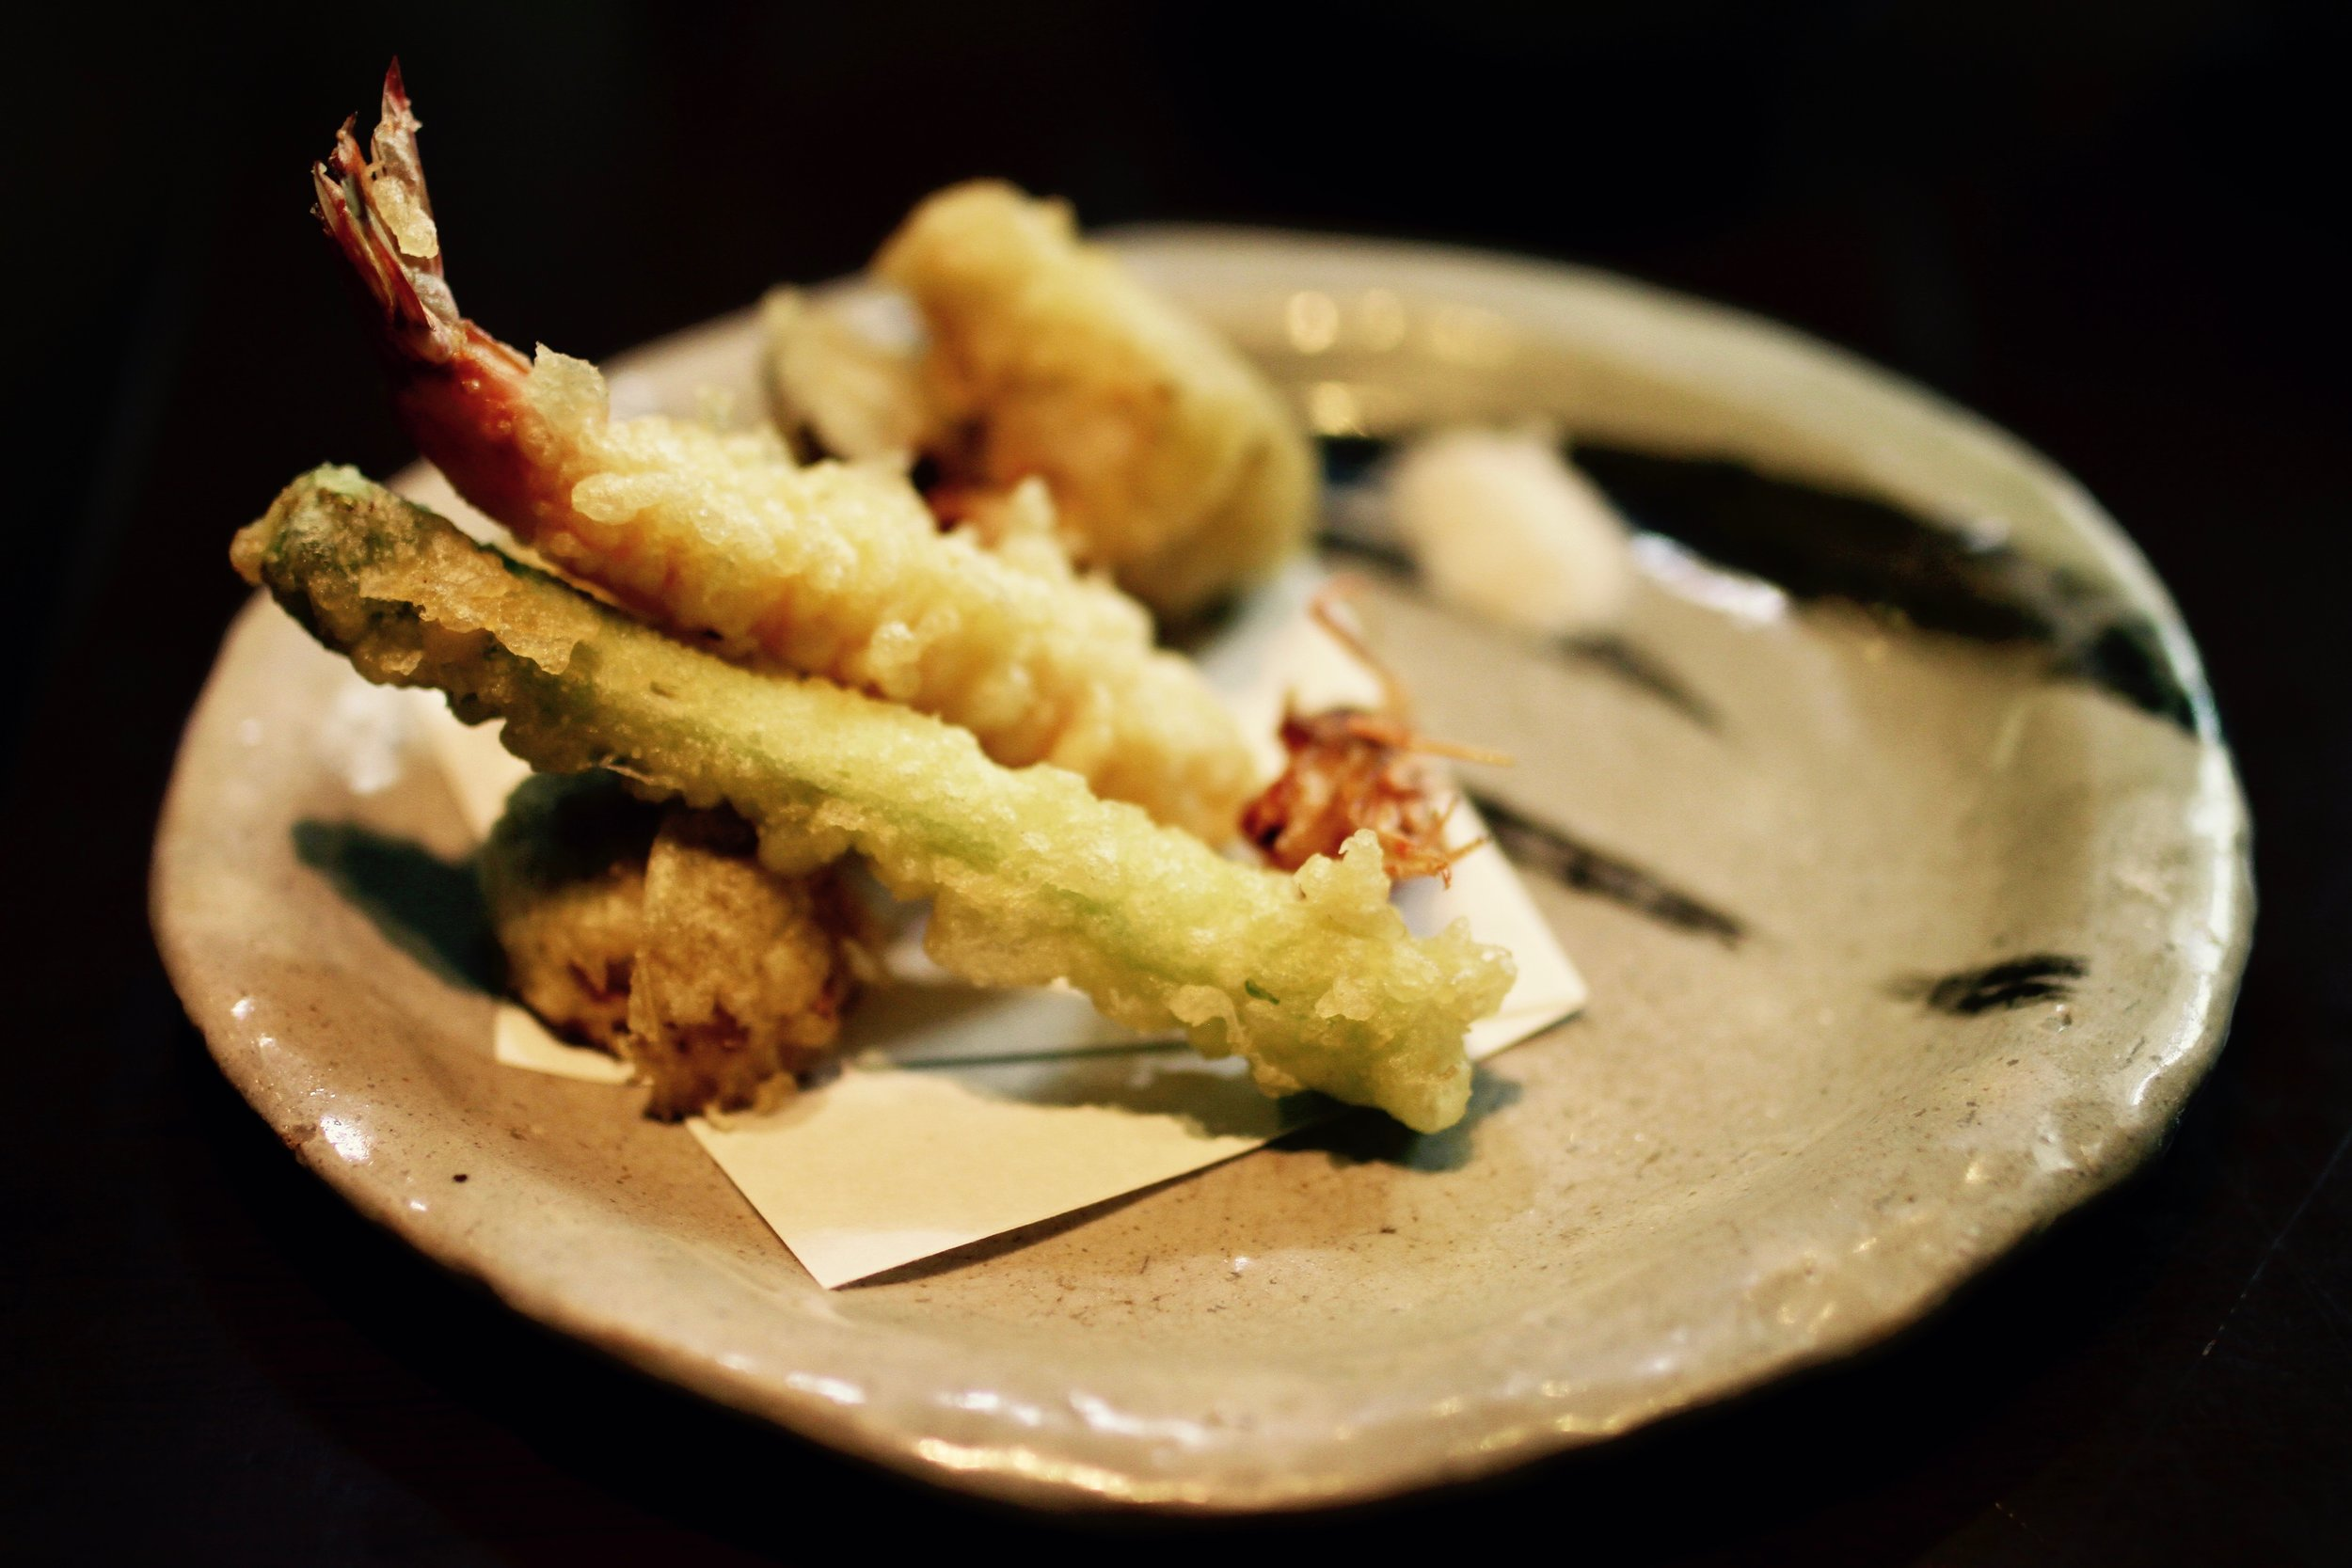 Exquisitely prepared, dry tempura and salt.